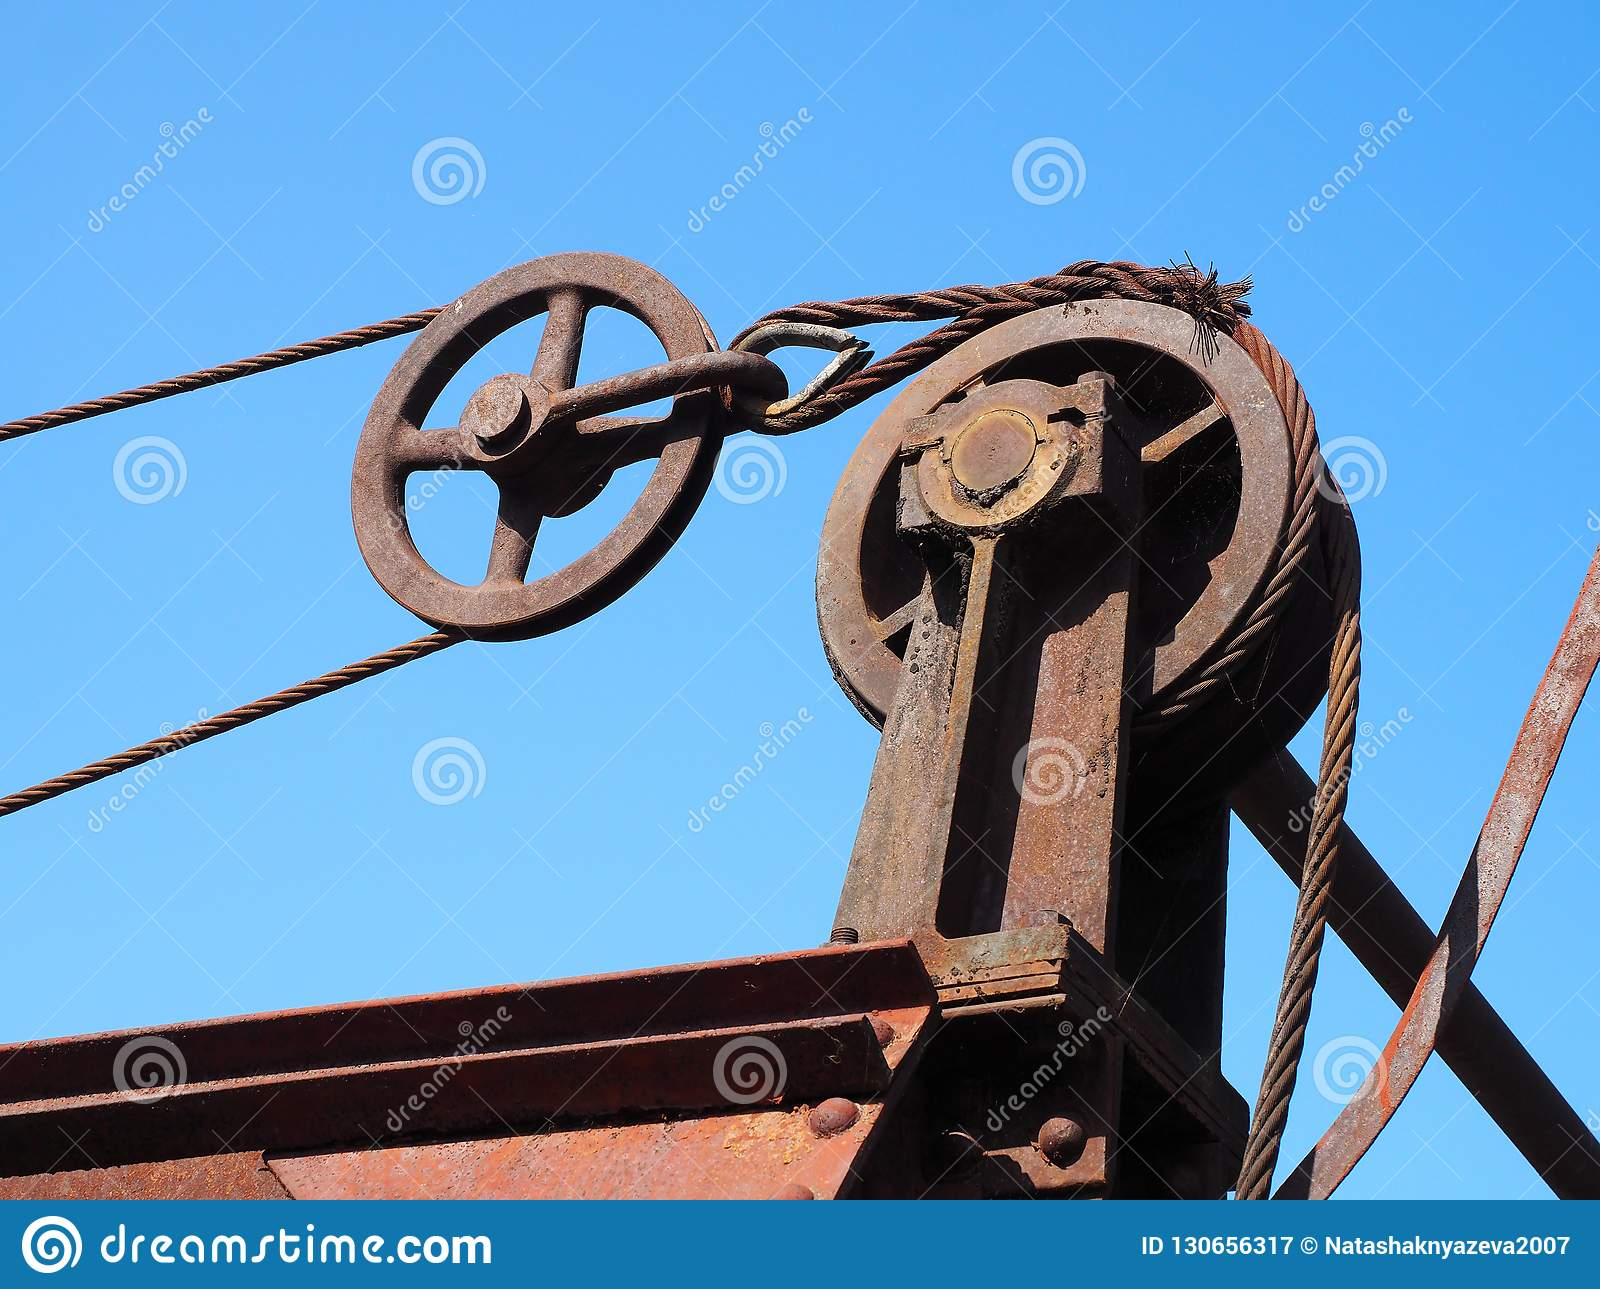 Detail of closing mechanism of old